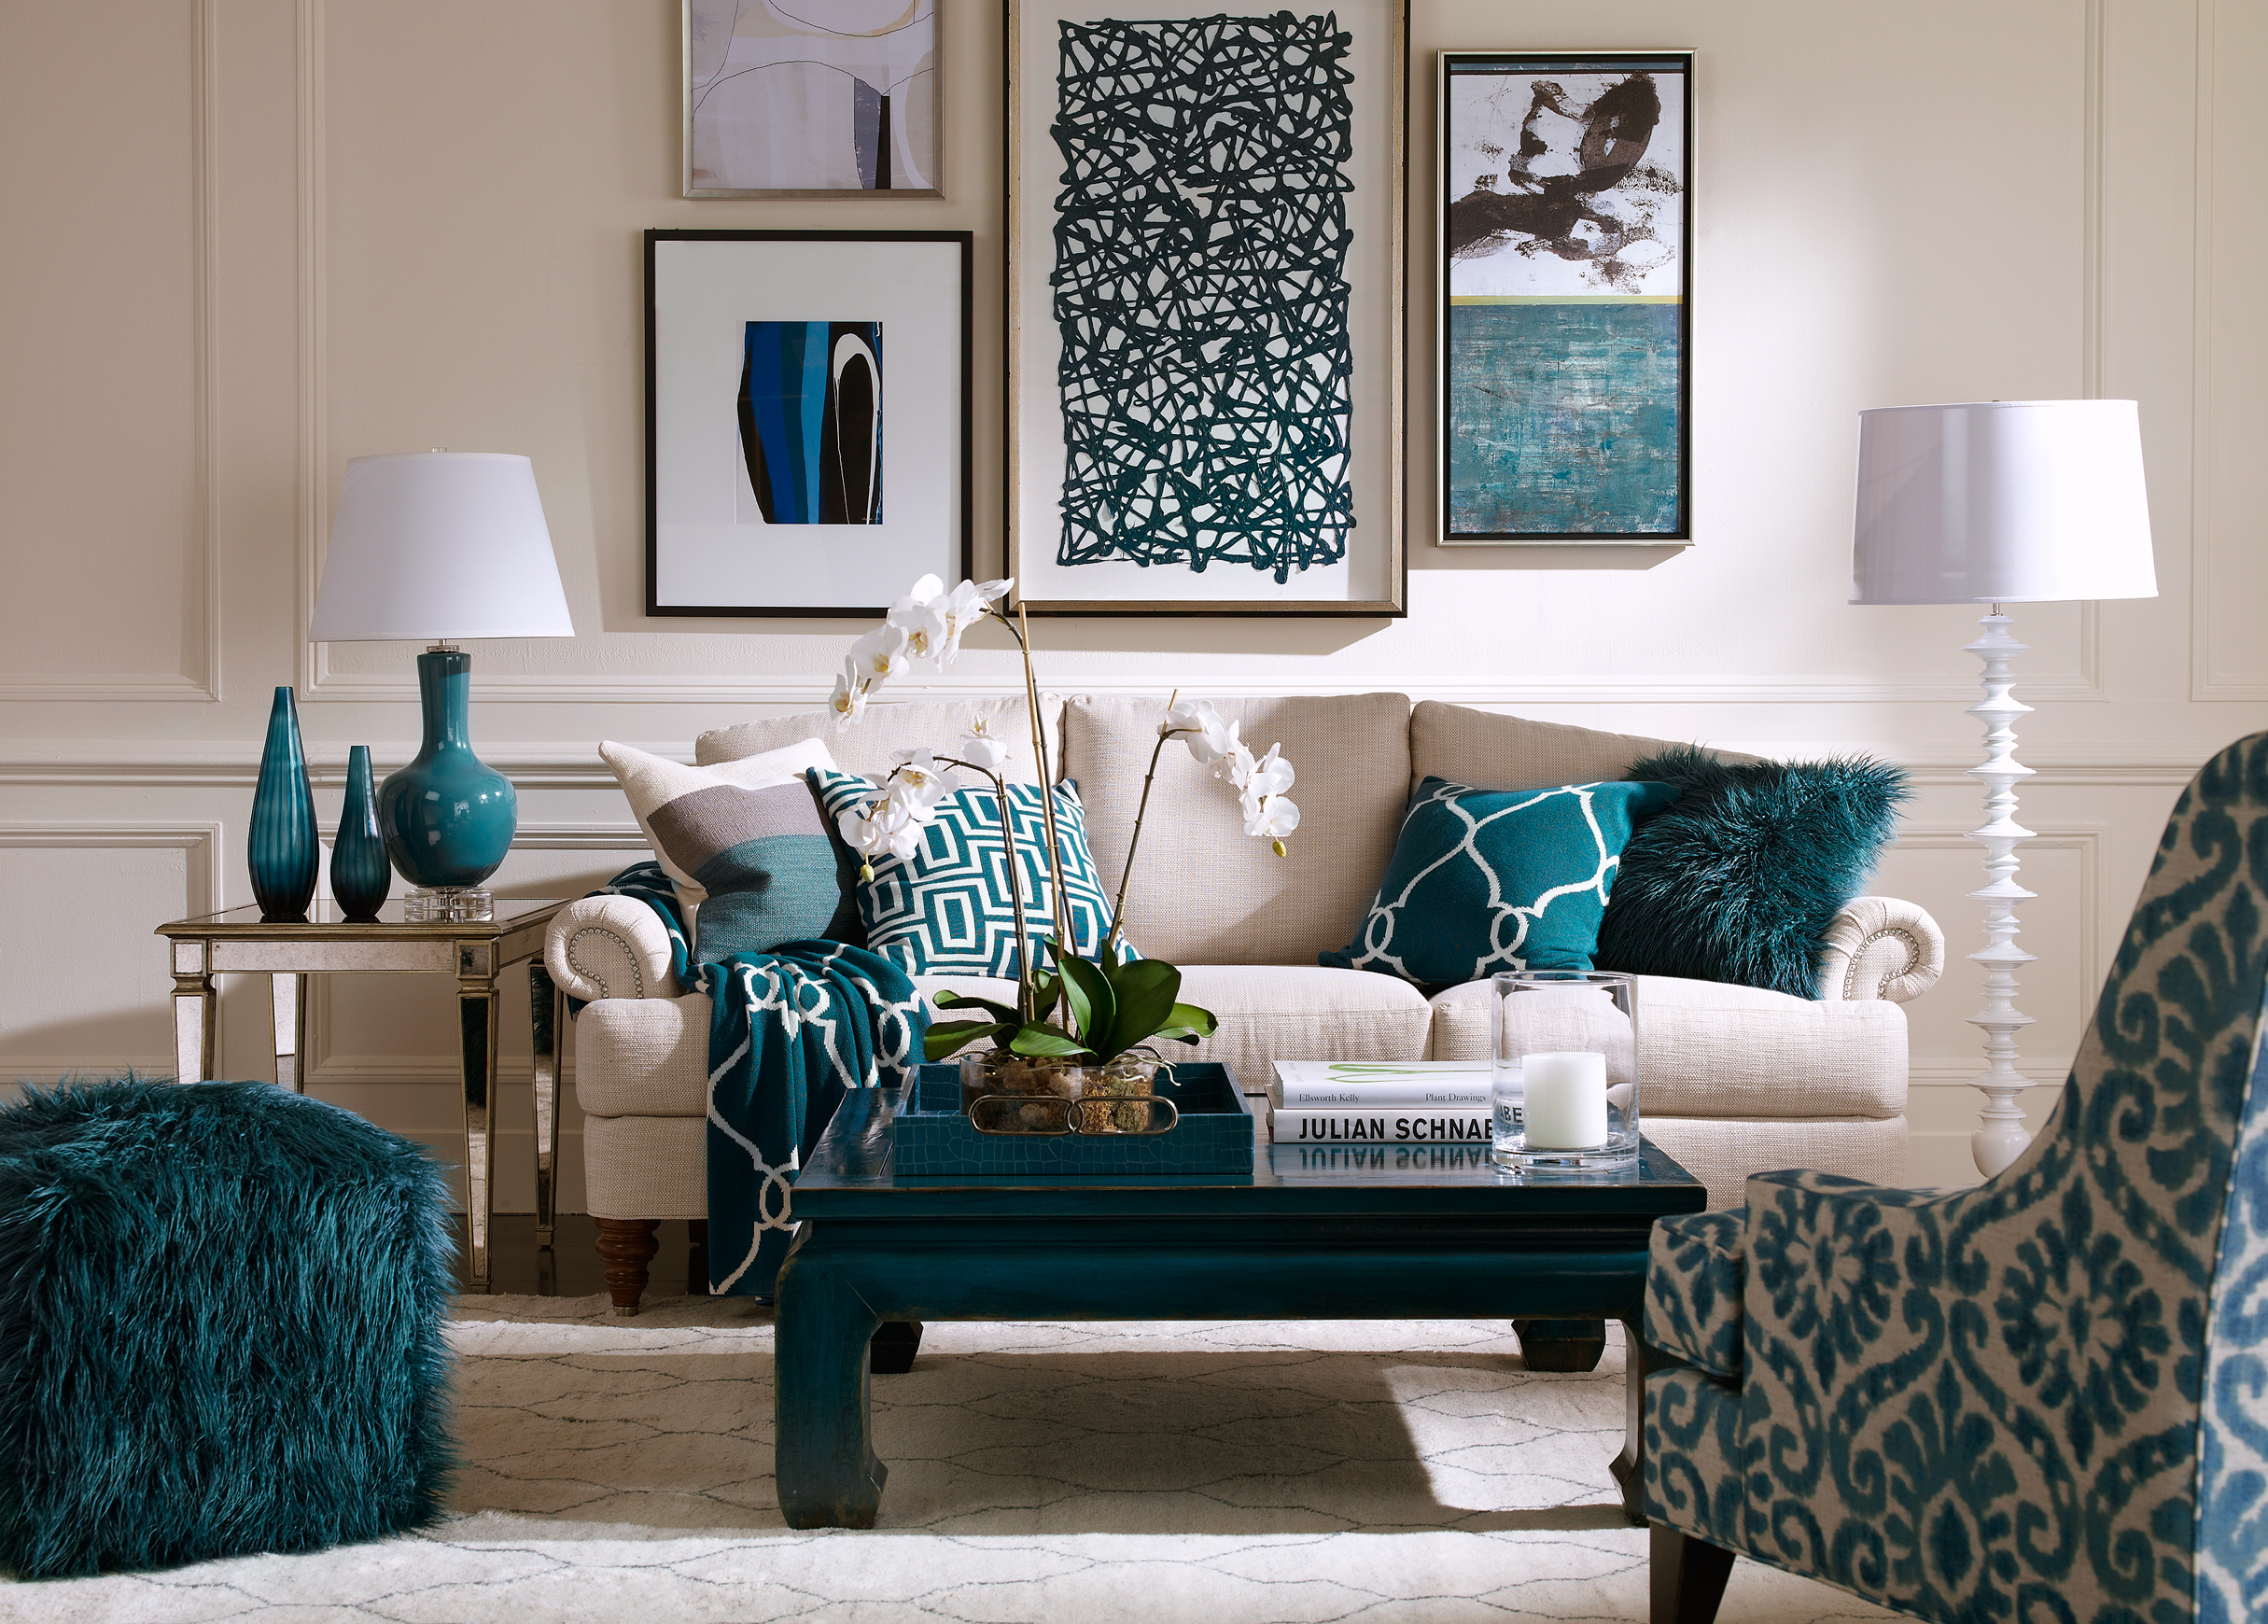 4. Accent Colors - While you may love the neutral trend, integrating colors into your palette can make any house feel like a home. Bright or rich colors can warm your living space and make your guests feel invited.Be consistent with the colors you bring into your decor. For example, if royal blue is your accent color, achieve the look by adding royal throw pillows, artwork, and curtains.